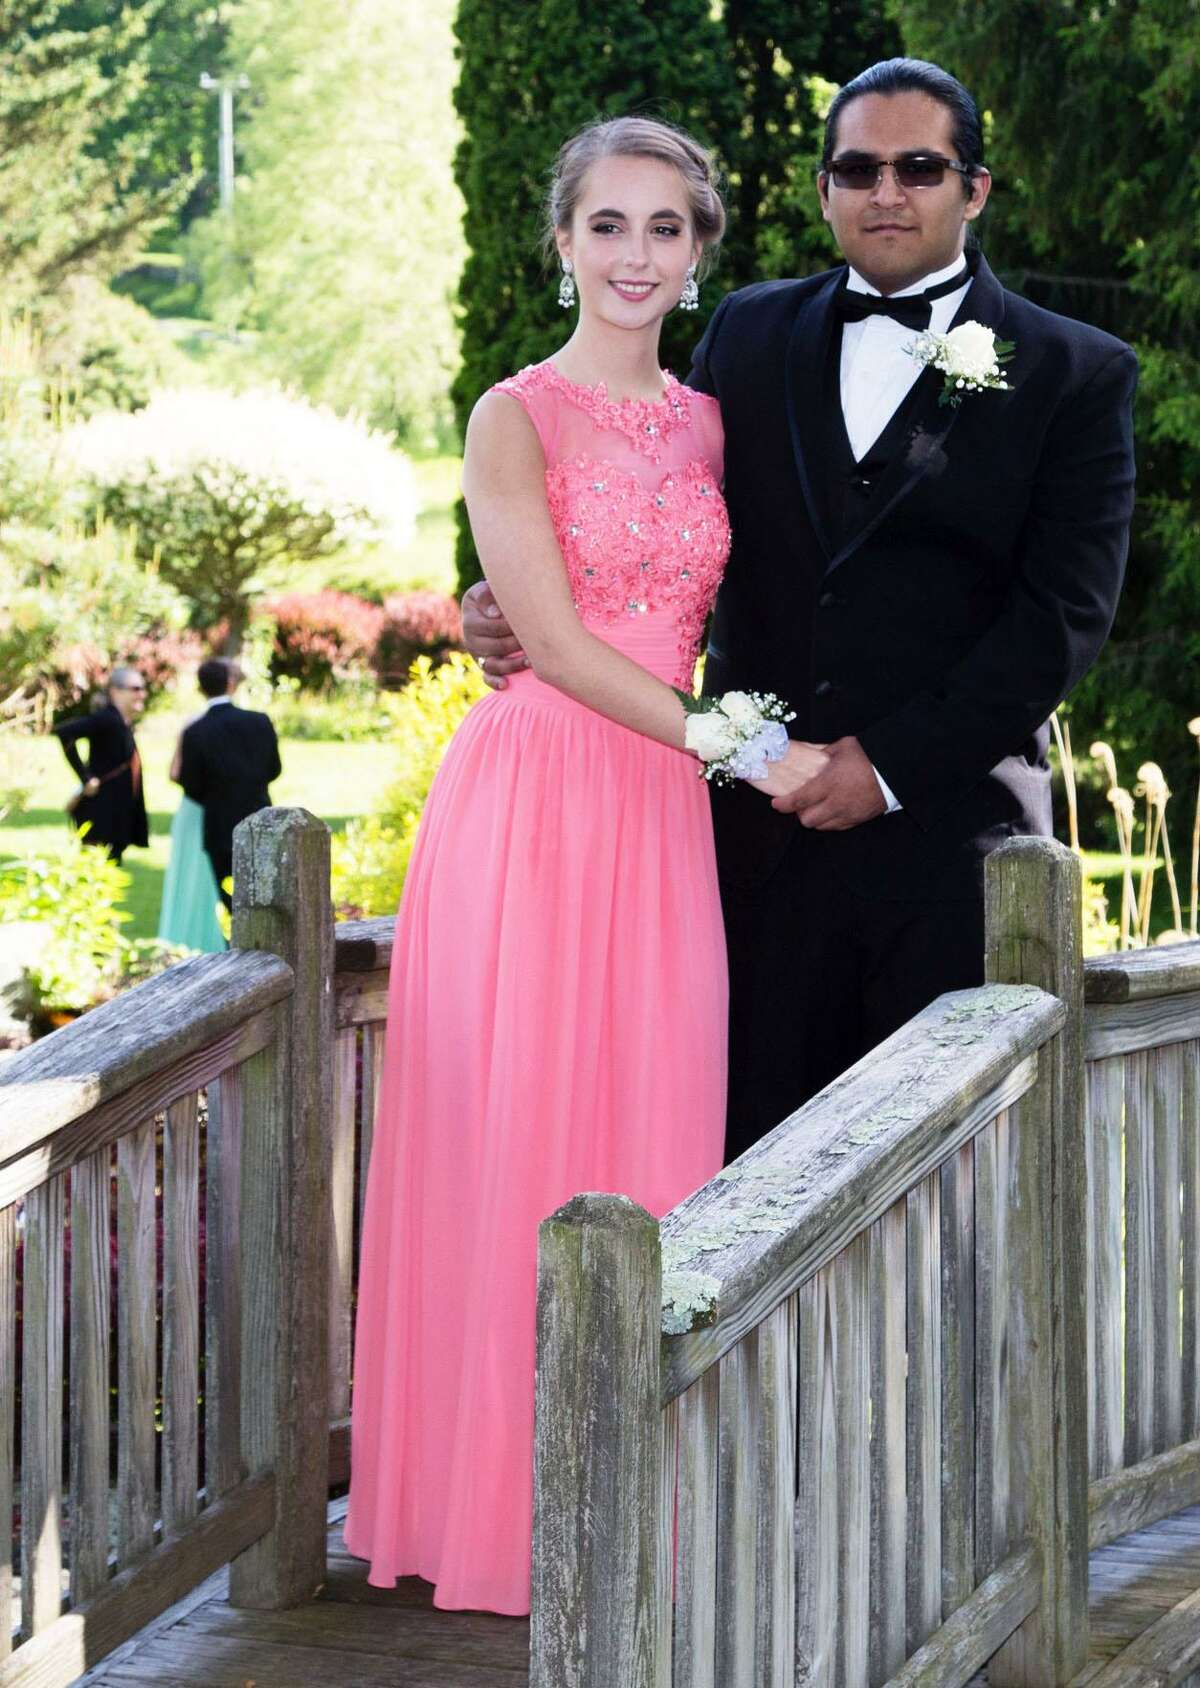 Glenholme School students Sarah Marsh and Ditoyyo Billie pose for traditional photos during the pre-prom gathering in the Garden Field at the school.